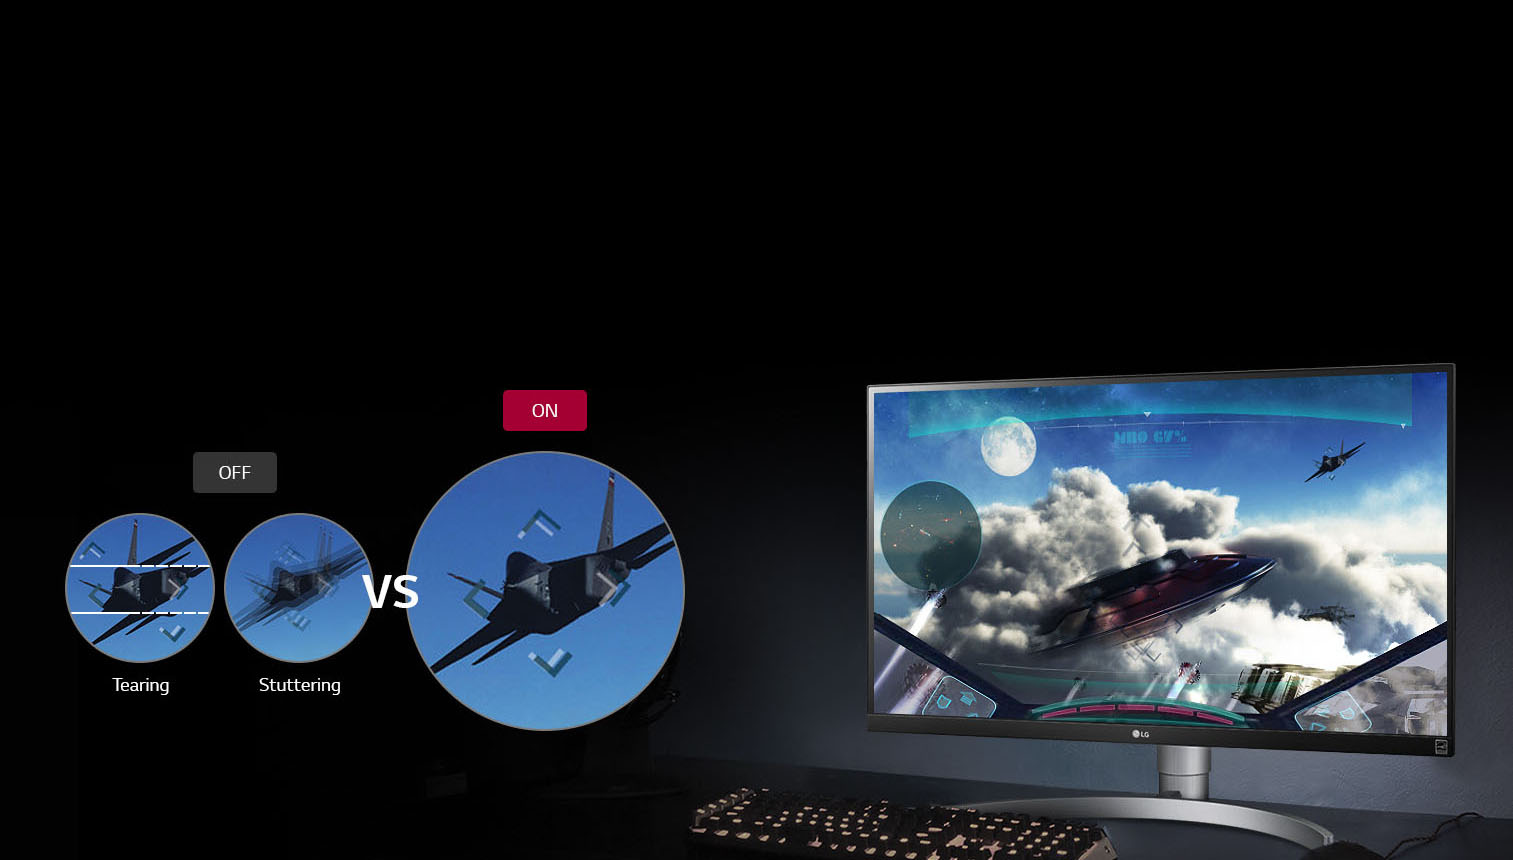 LG Monitor Showing a Jet Flying Simulator and a Comparison of Tearing/Stuttering Eliminated by FreeSync